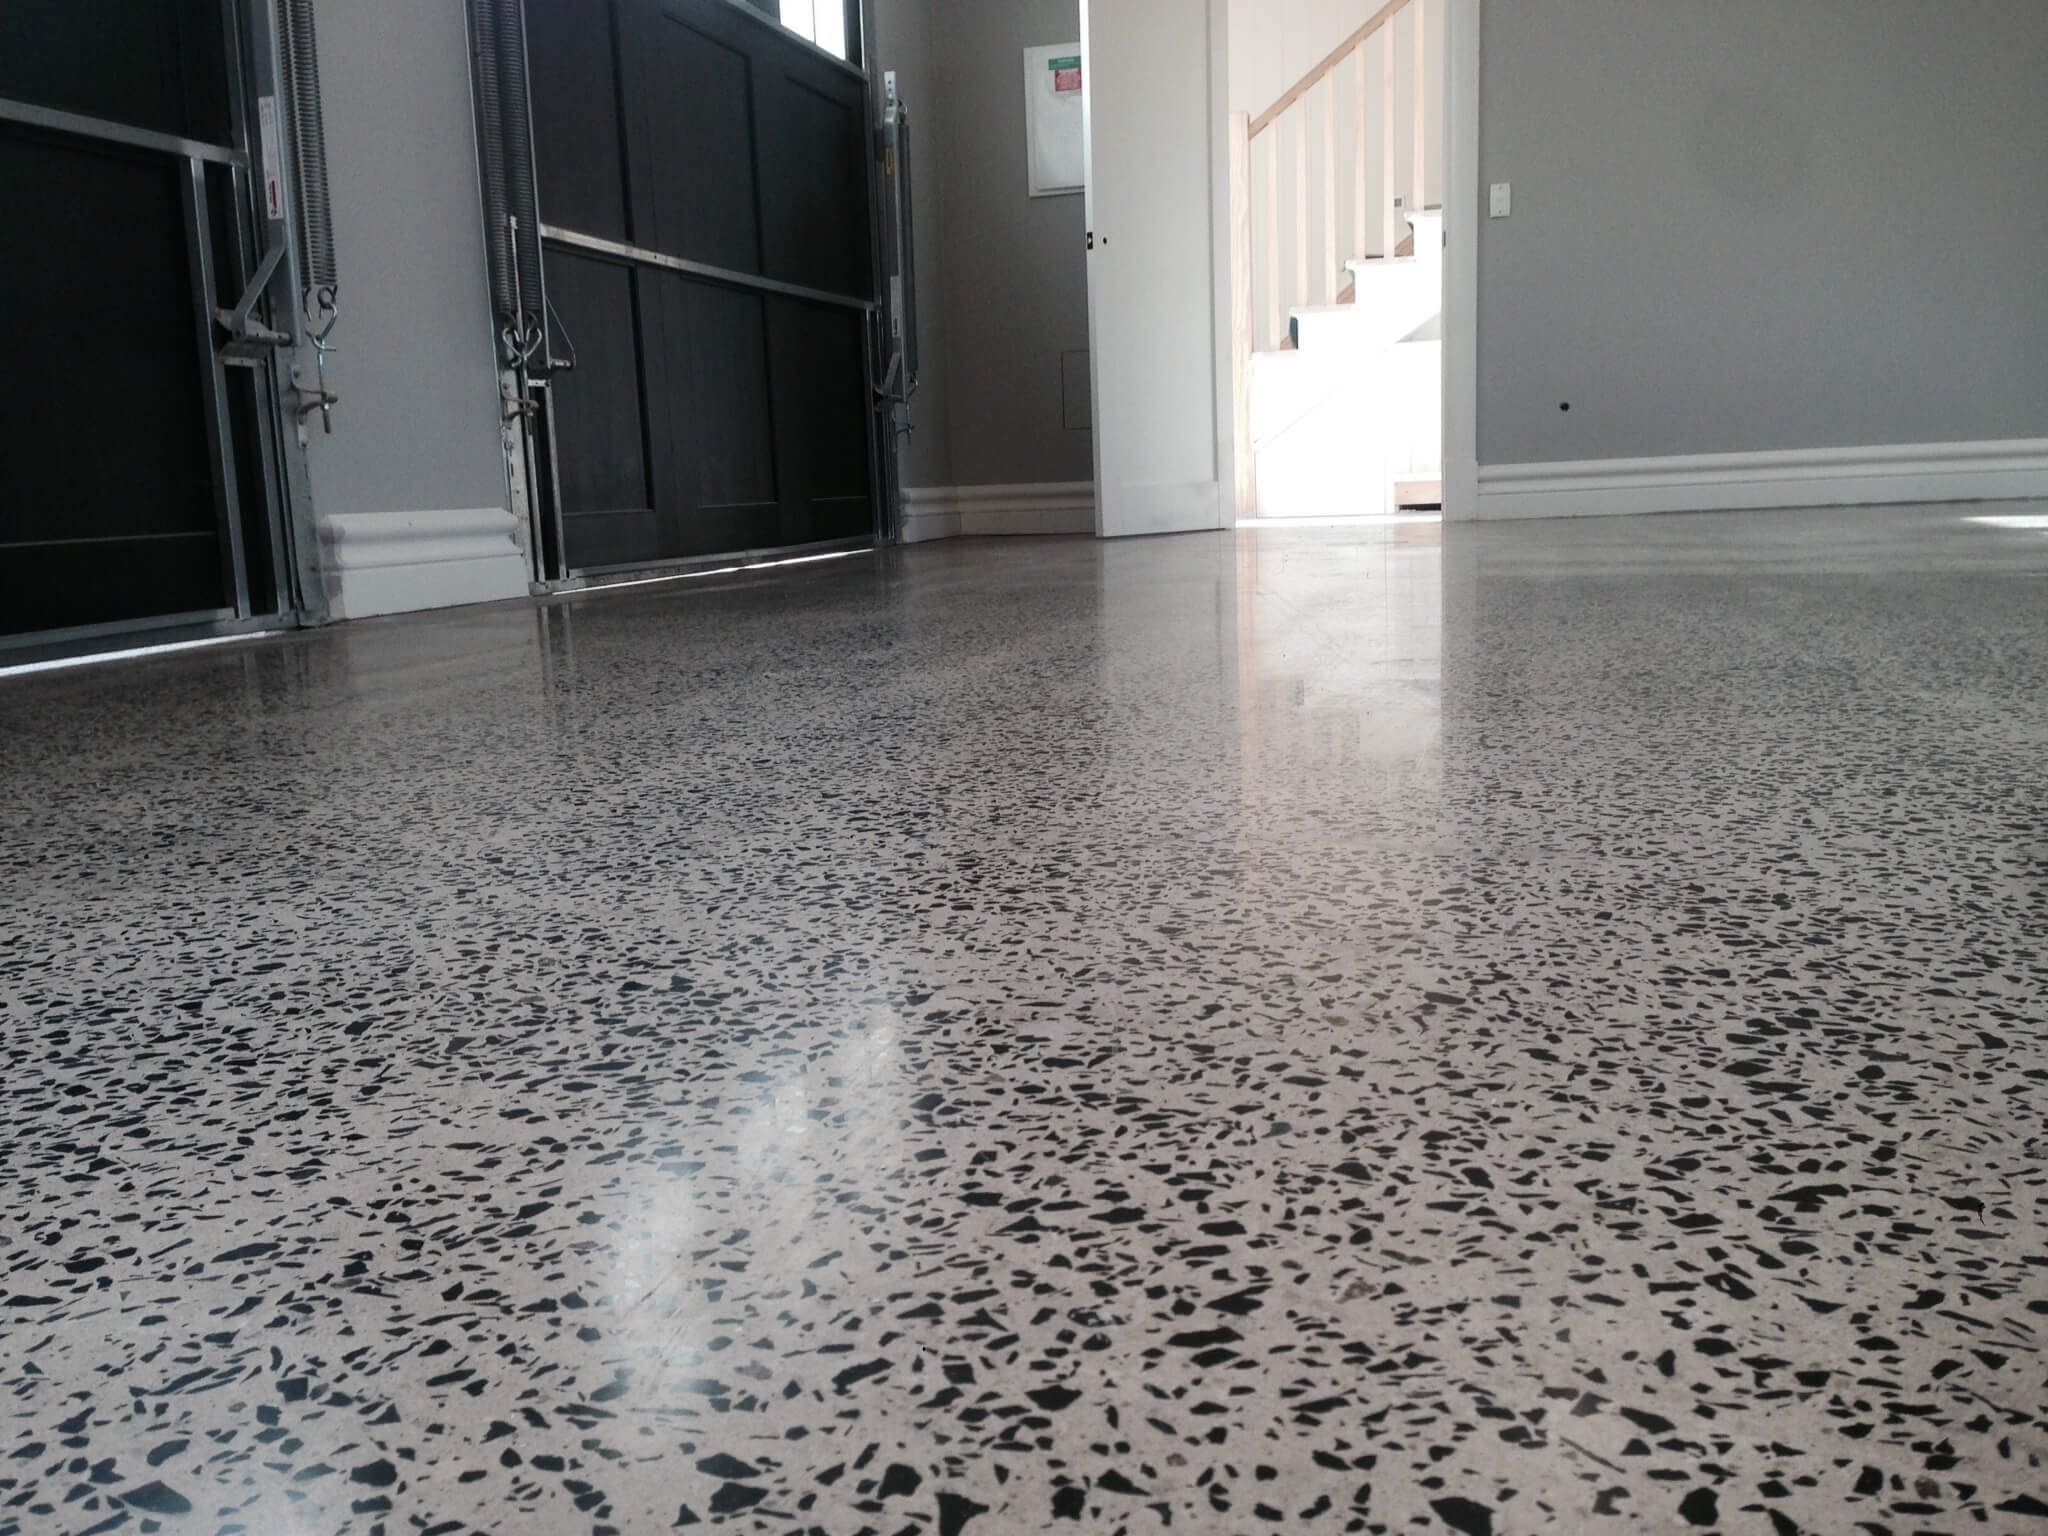 Best Garage Floors Ideas Let S Look At Your Options Garage Floors Ideas Garage Floor Coatings Garage Flooring Options Garage Tile